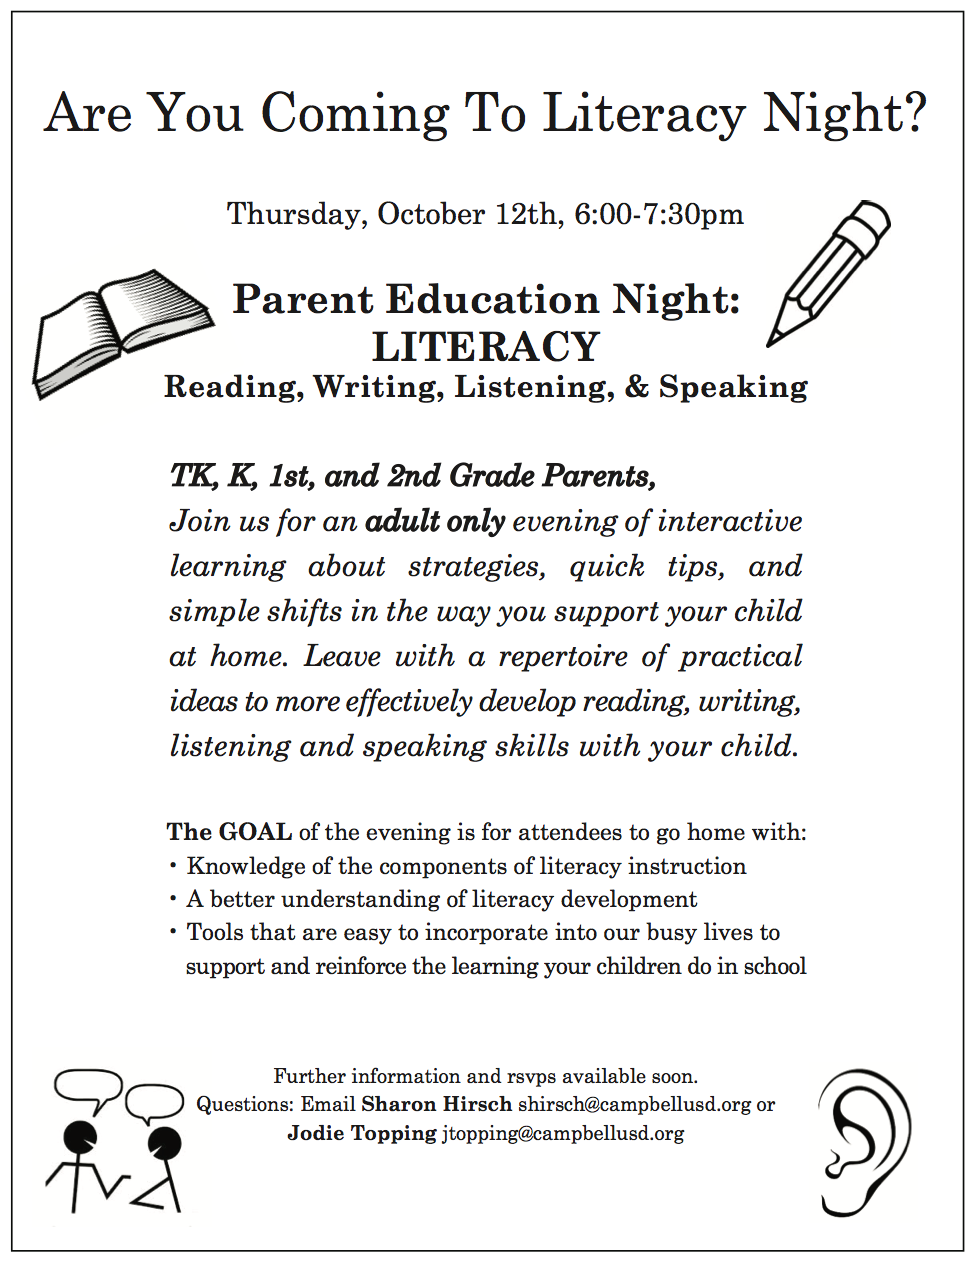 Literacy Night Save the Date.png